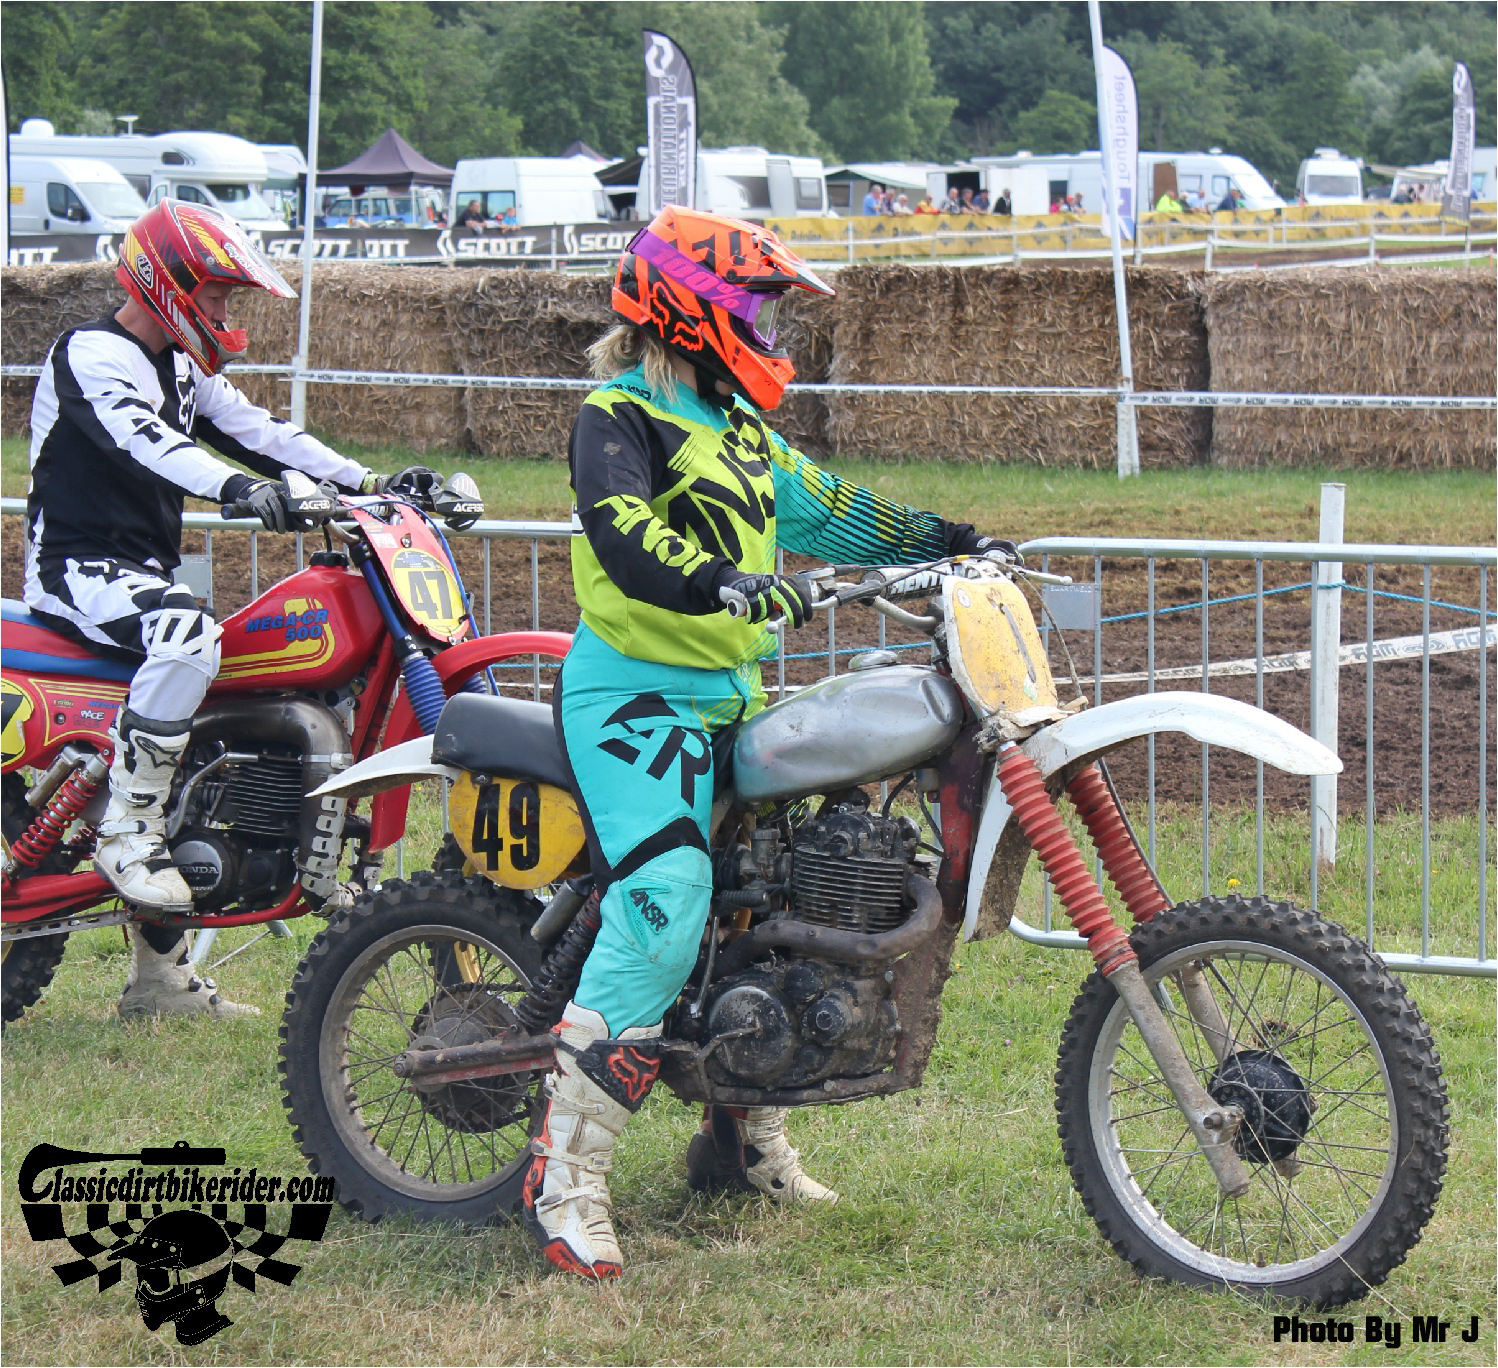 king of the castle 2015 photos Farleigh Castle twinshock motocross classicdirtbikerider.com 13